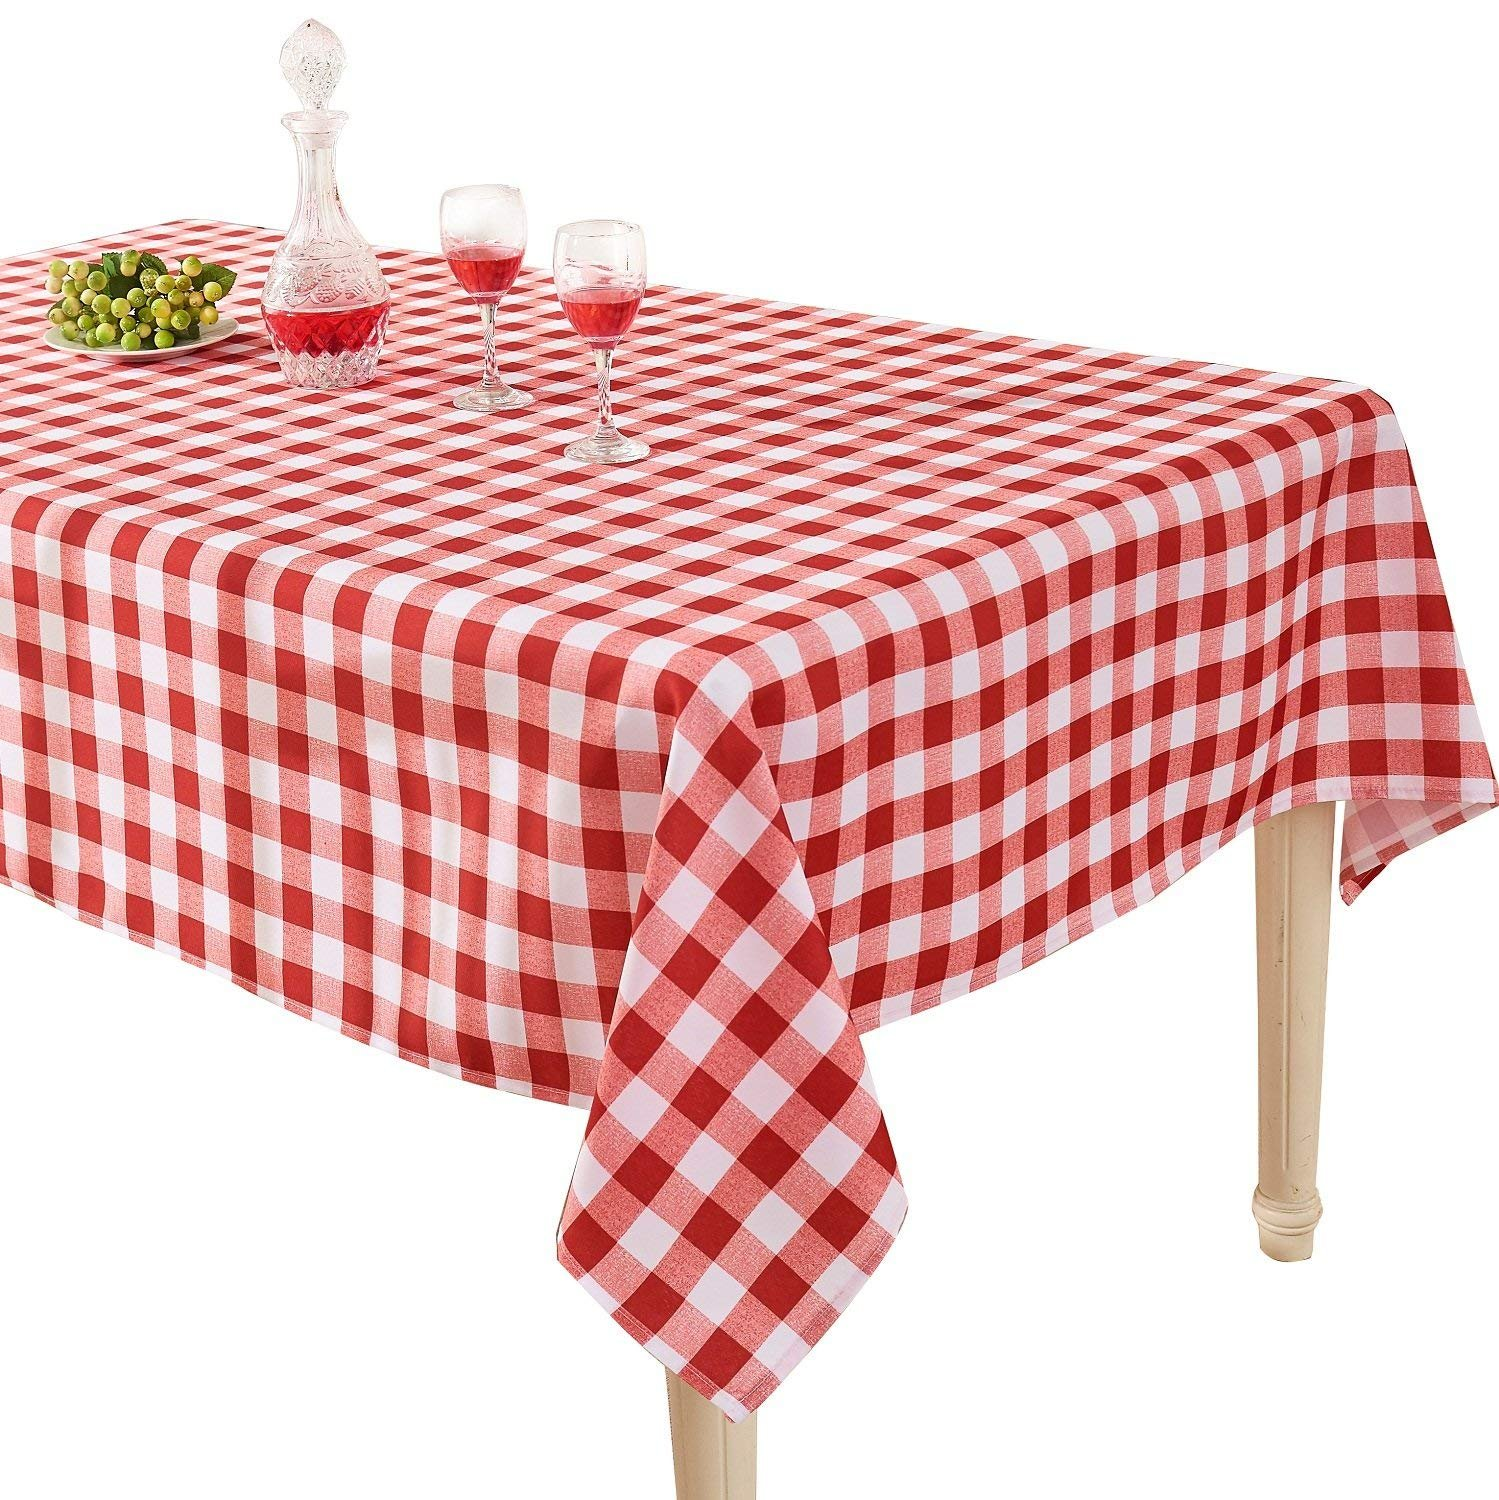 YEMYHOM 100% Polyester Spillproof Tablecloths for Rectangle Tables 60 x 104 Inch Indoor Outdoor Camping Picnic Rectangular Table Cloth (Red and White Checkered) by YEMYHOM